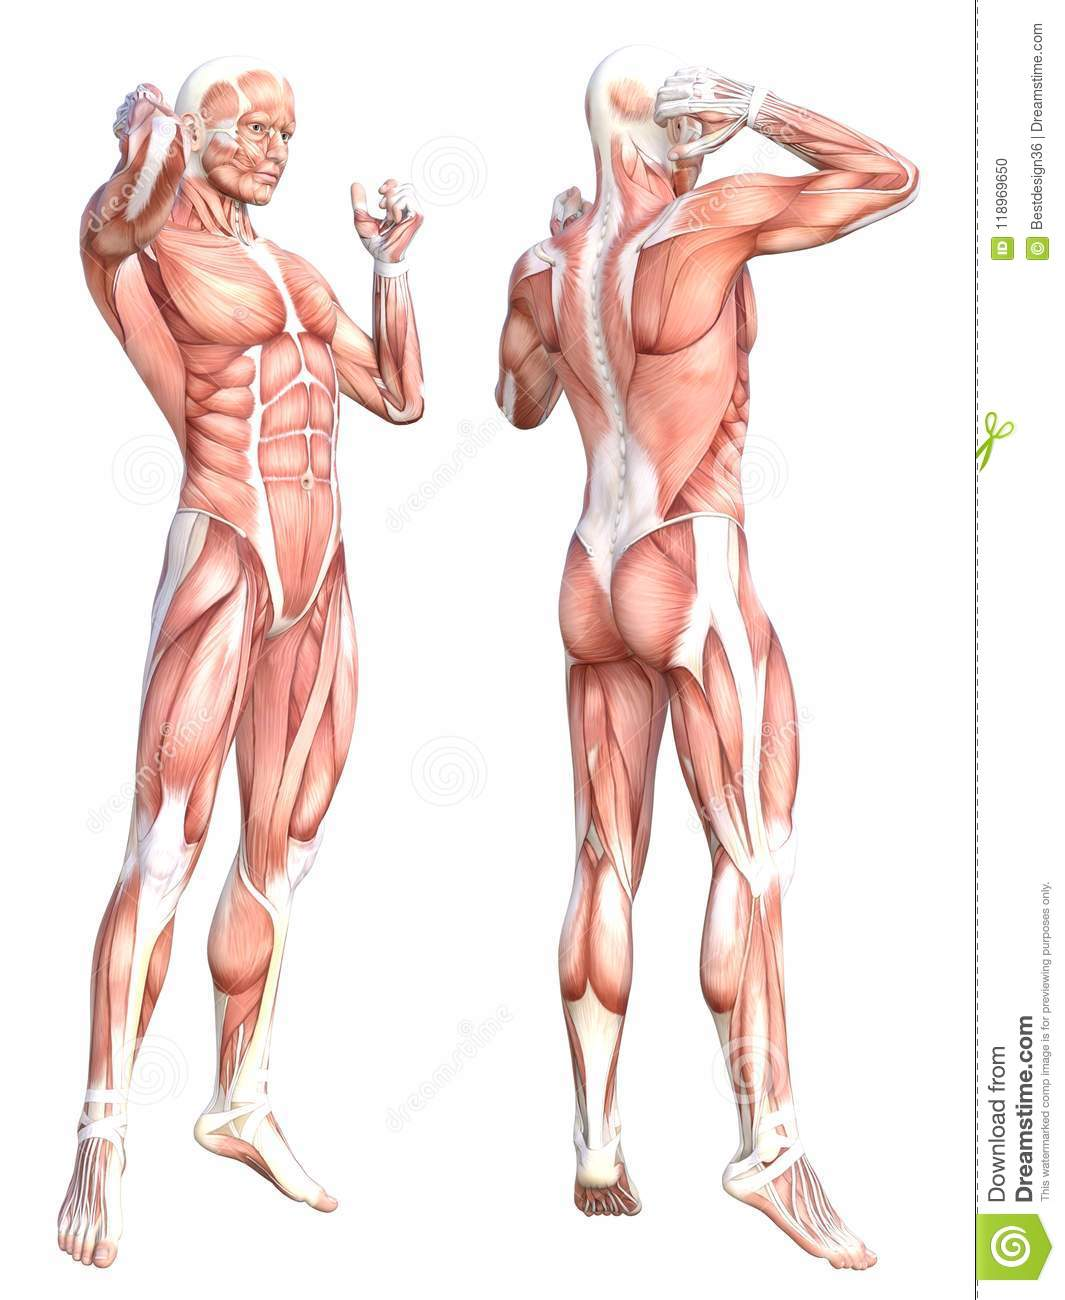 Anatomy Healthy Skinless Human Body Muscle System Stock Illustration